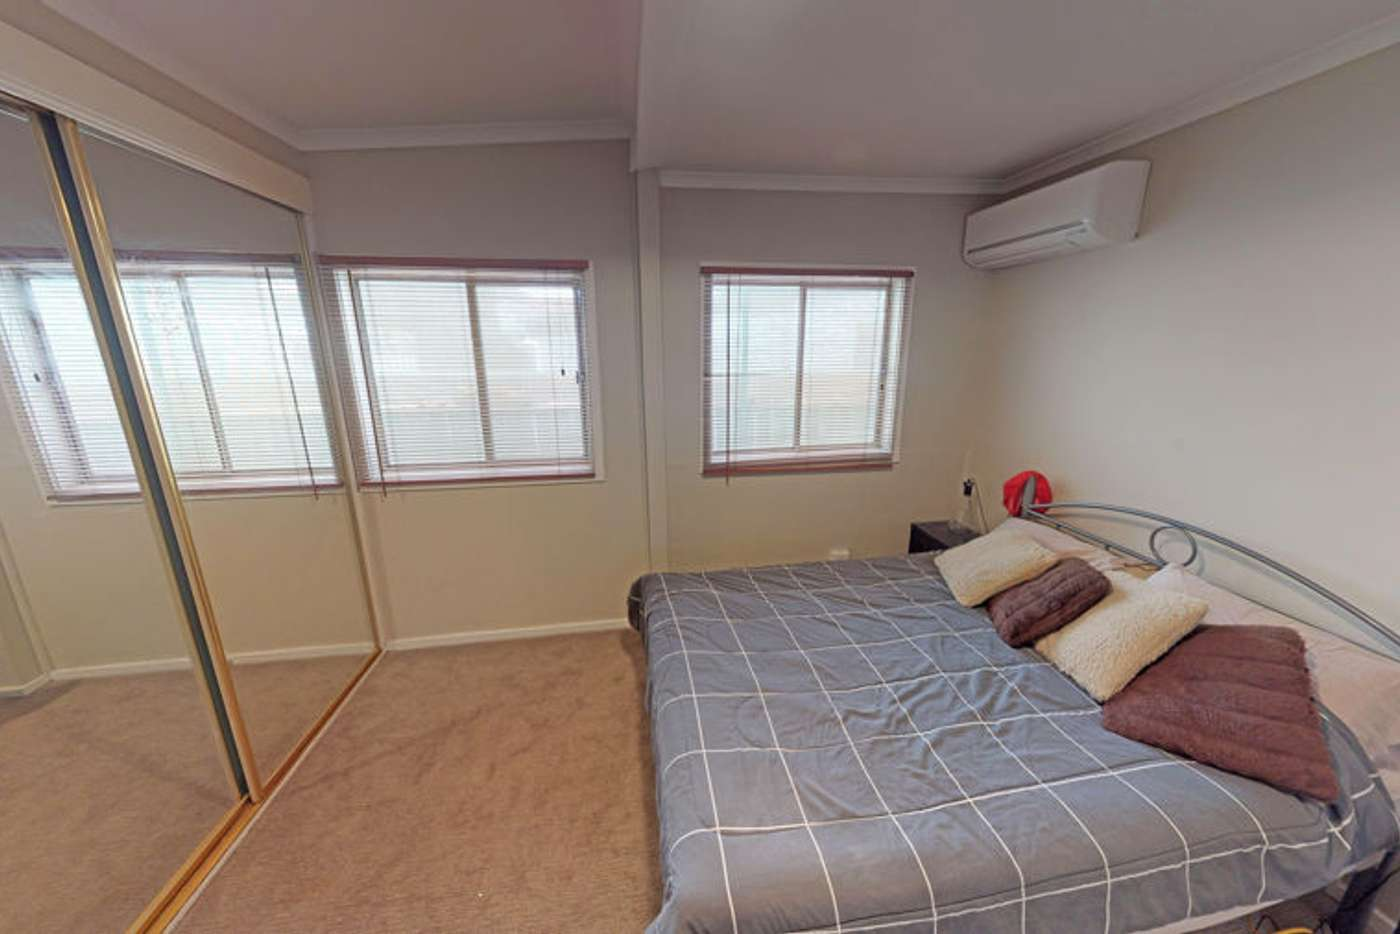 Fifth view of Homely house listing, 170 Gurwood Street, Wagga Wagga NSW 2650